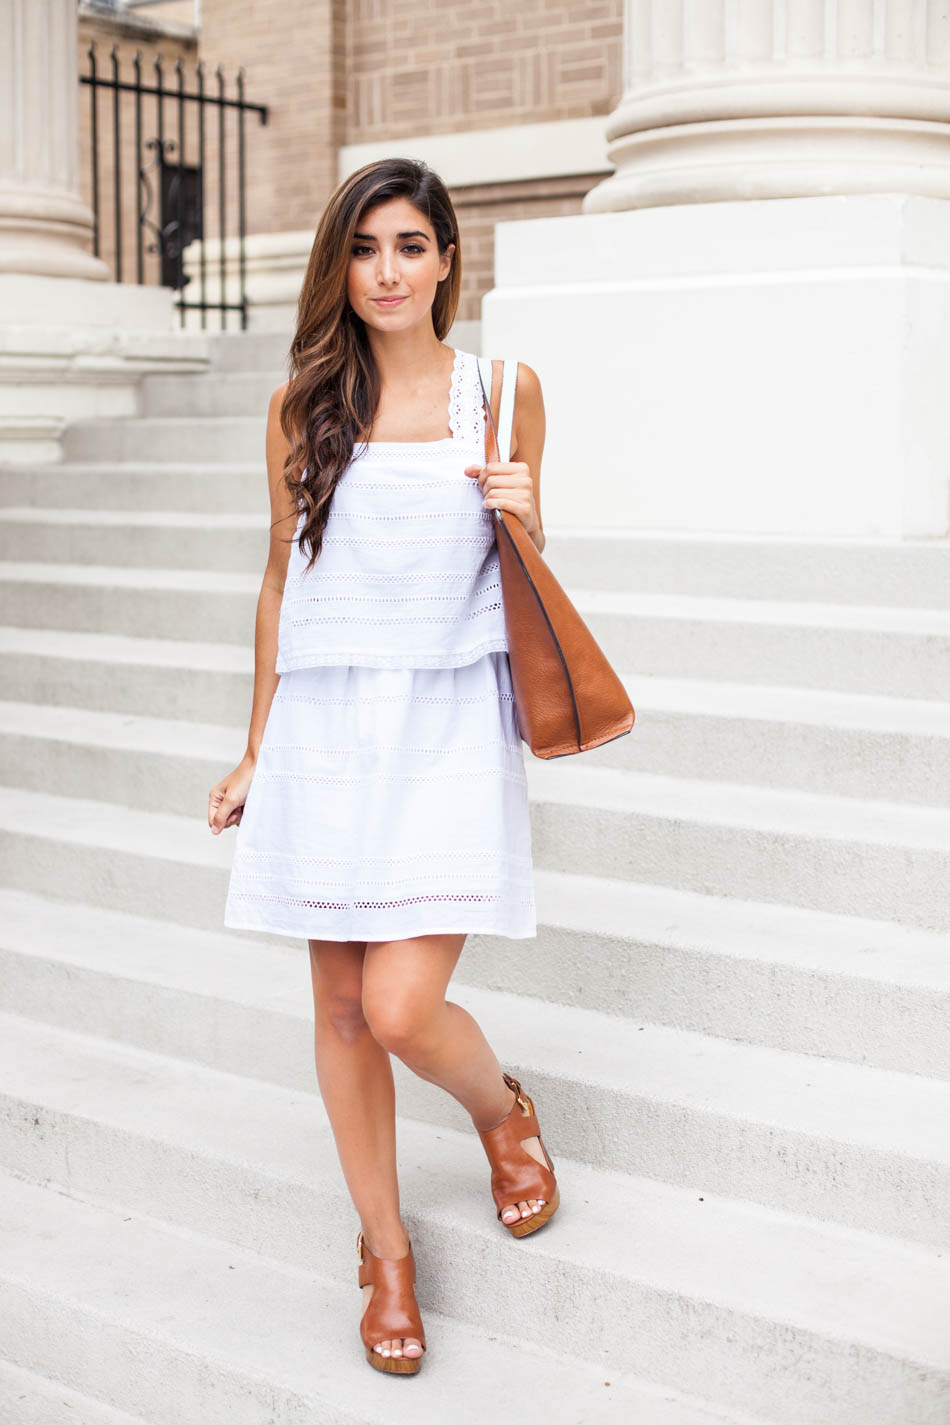 The Little White (Summer) Dress - The Darling Detail